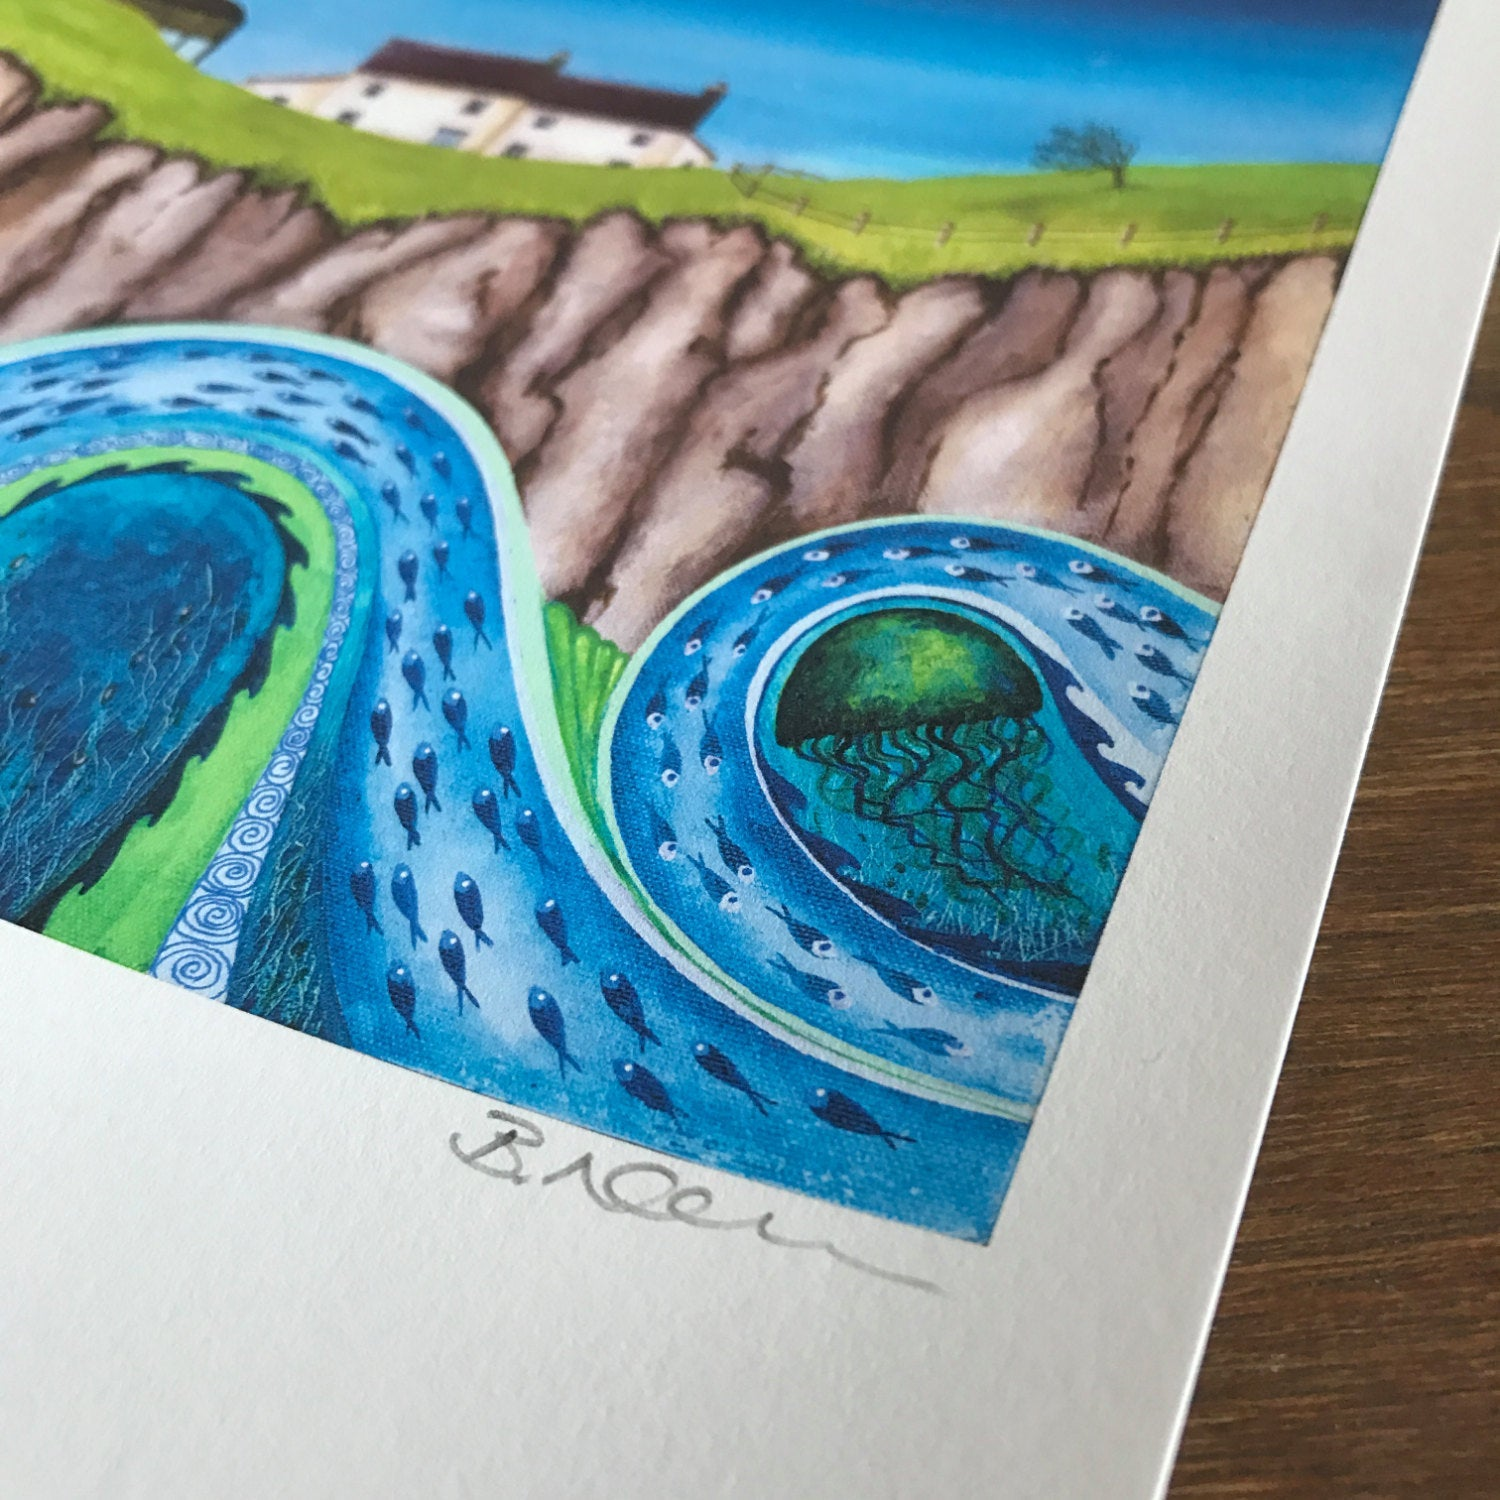 The Rising Swell - Limited Edition Print